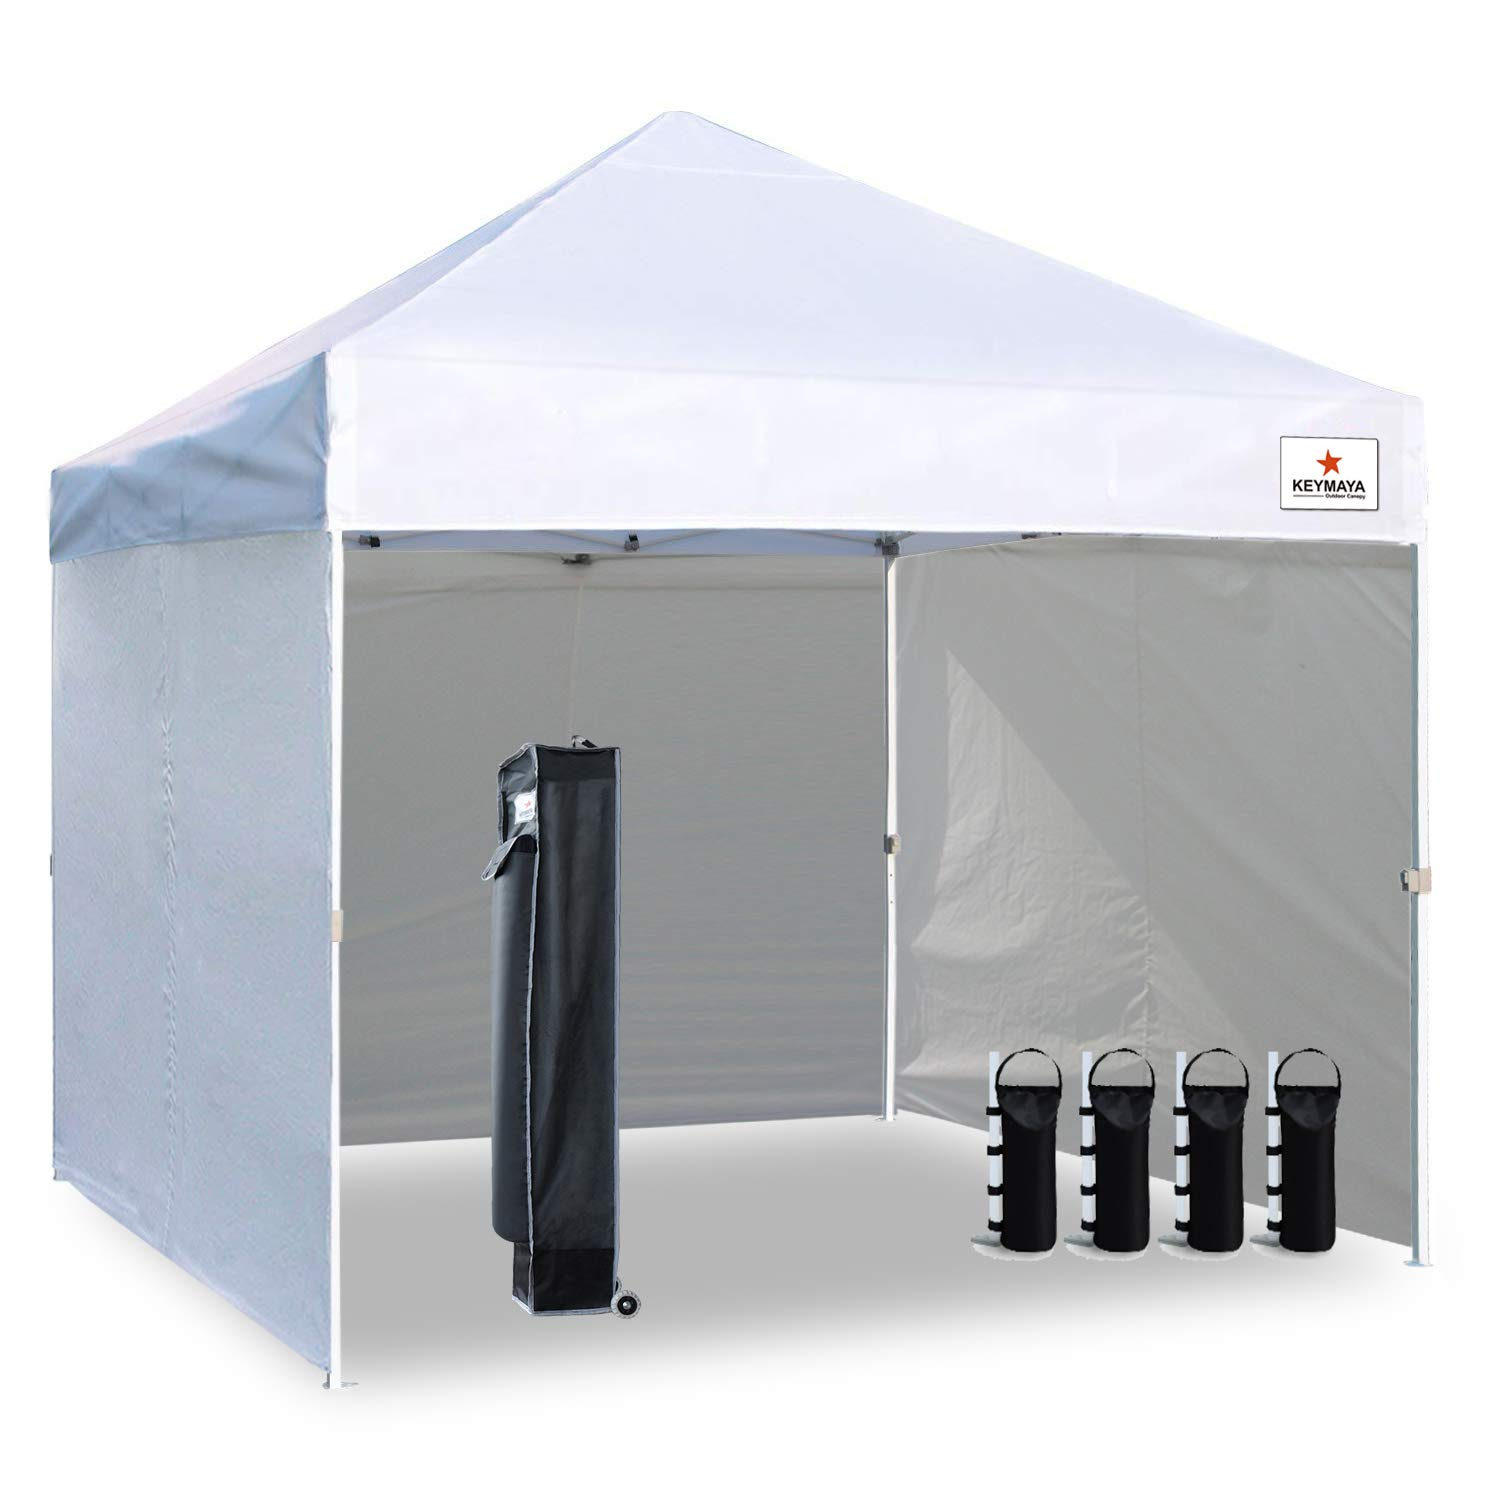 Keymaya 10'x10' Ez Pop Up Canopy Tent Commercial Instant Shelter with 4 Removable sidewalls Bonus Weight Bag 4-pc Pack 10x10, 10' x 10', 1# White